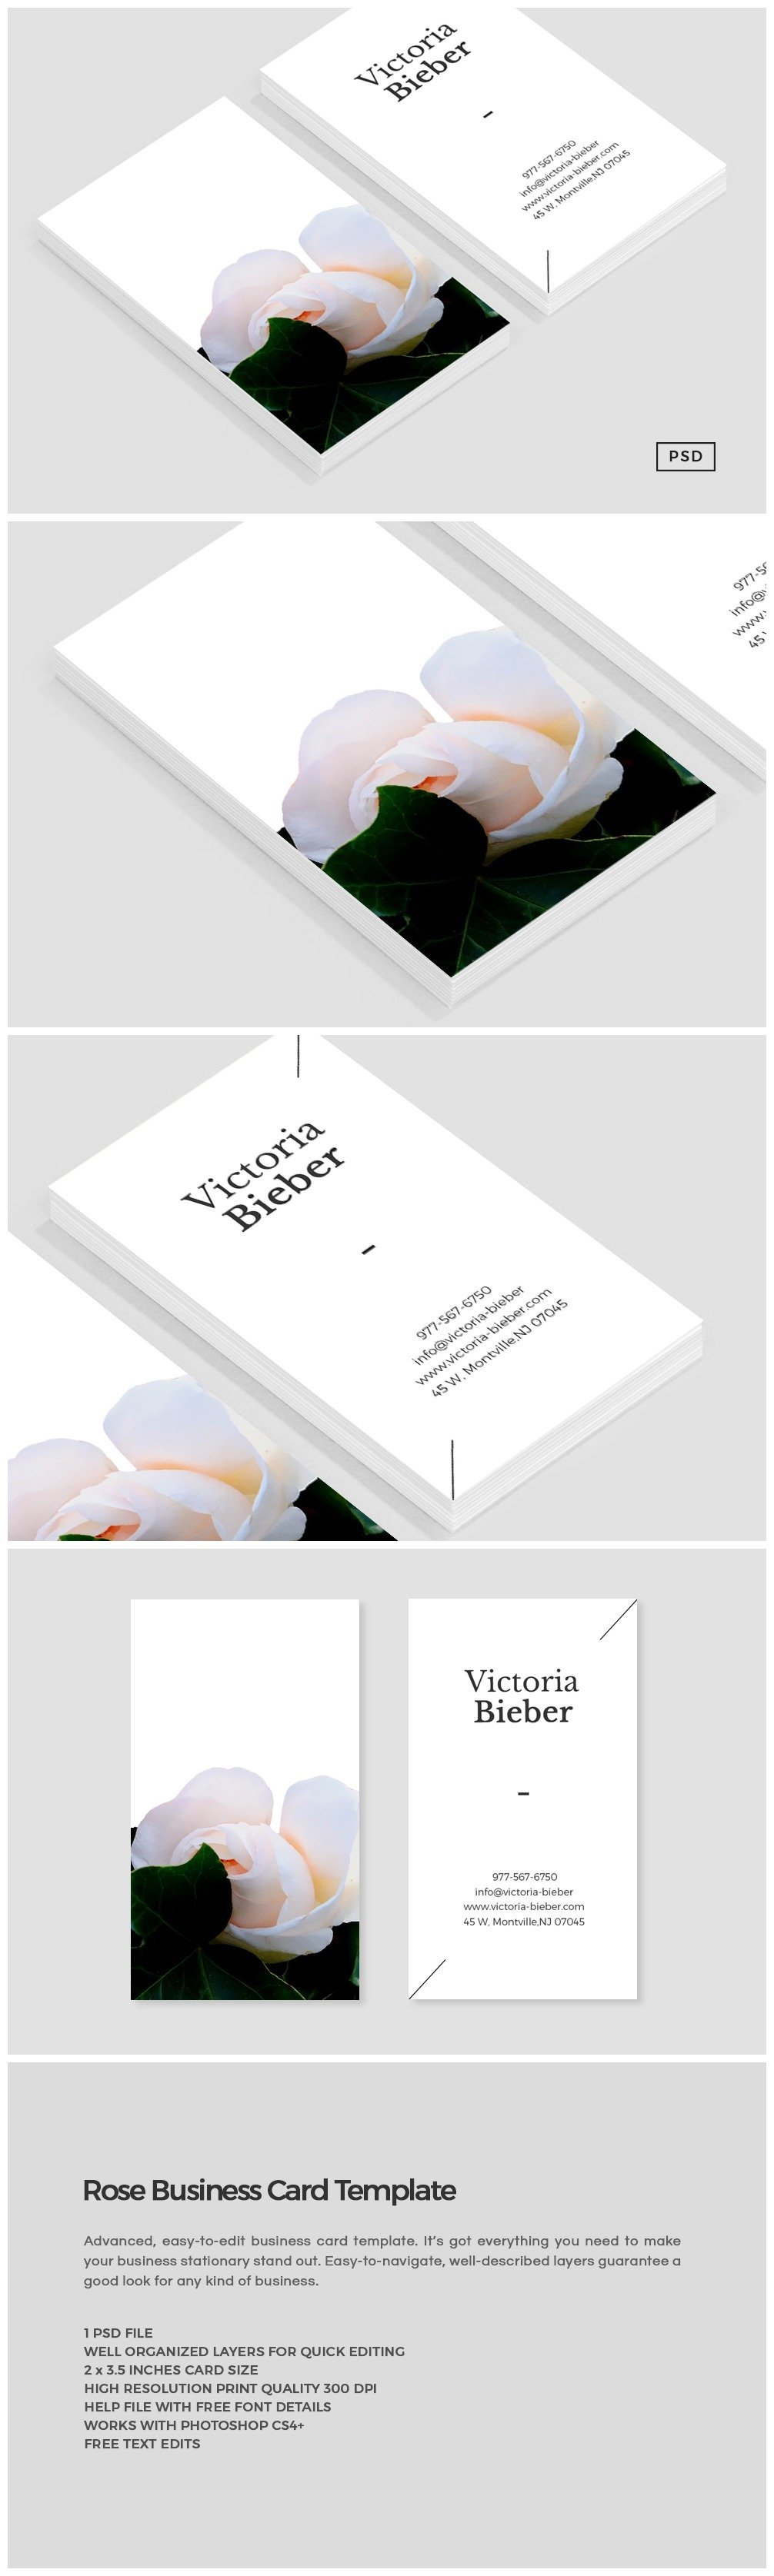 Rose business card template business card templates creative market flashek Gallery